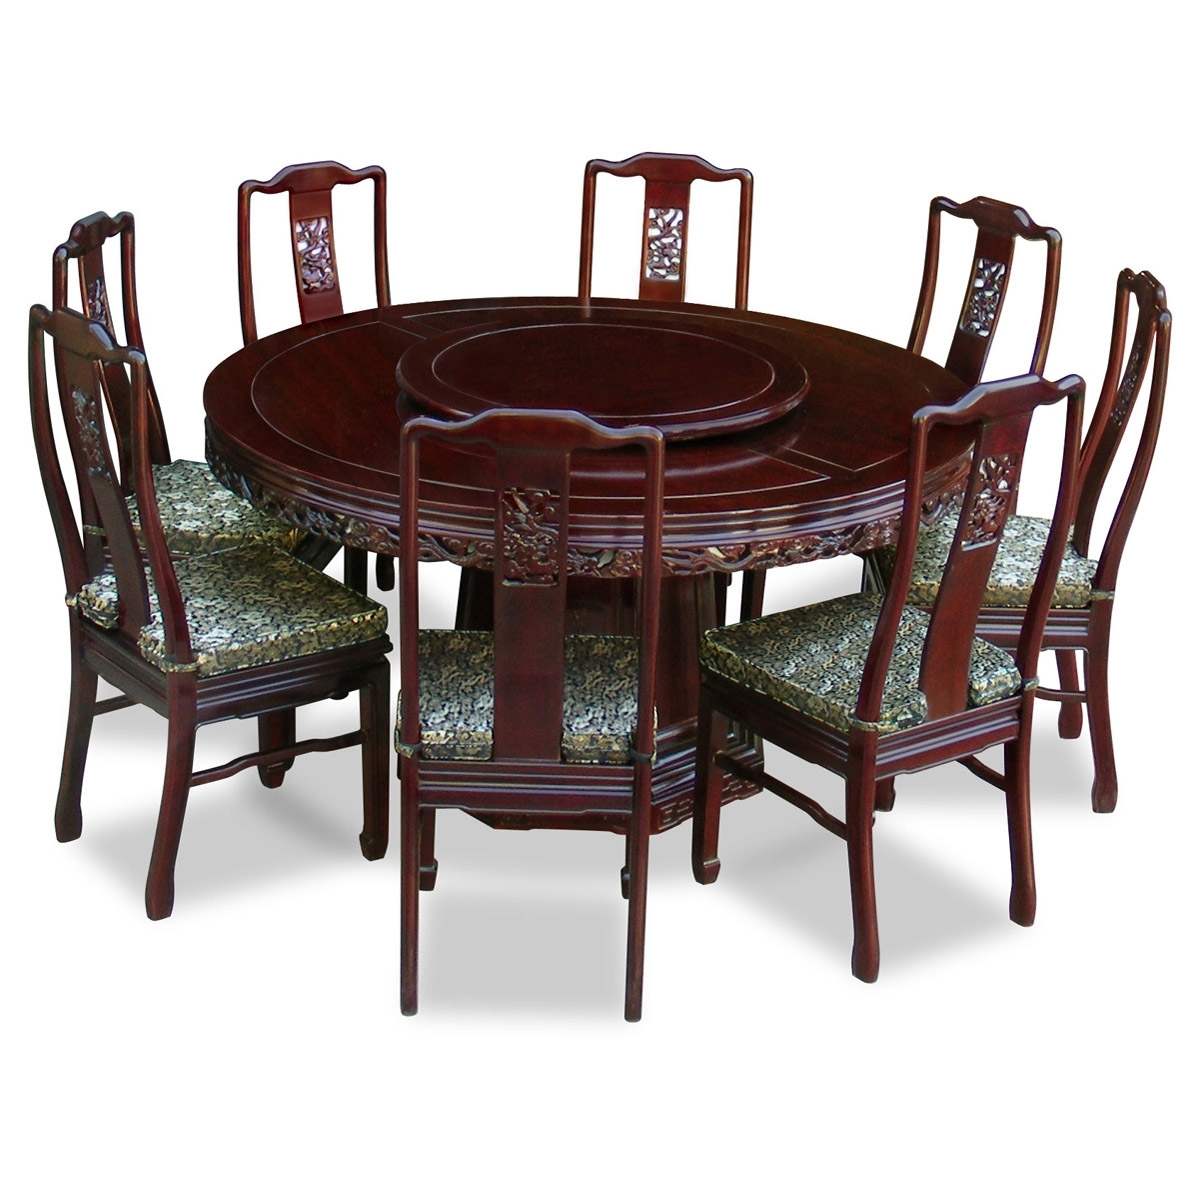 60In Rosewood Dragon Round Dining Table With 8 Chairs Inside Current Dining Tables With 8 Chairs (View 13 of 25)